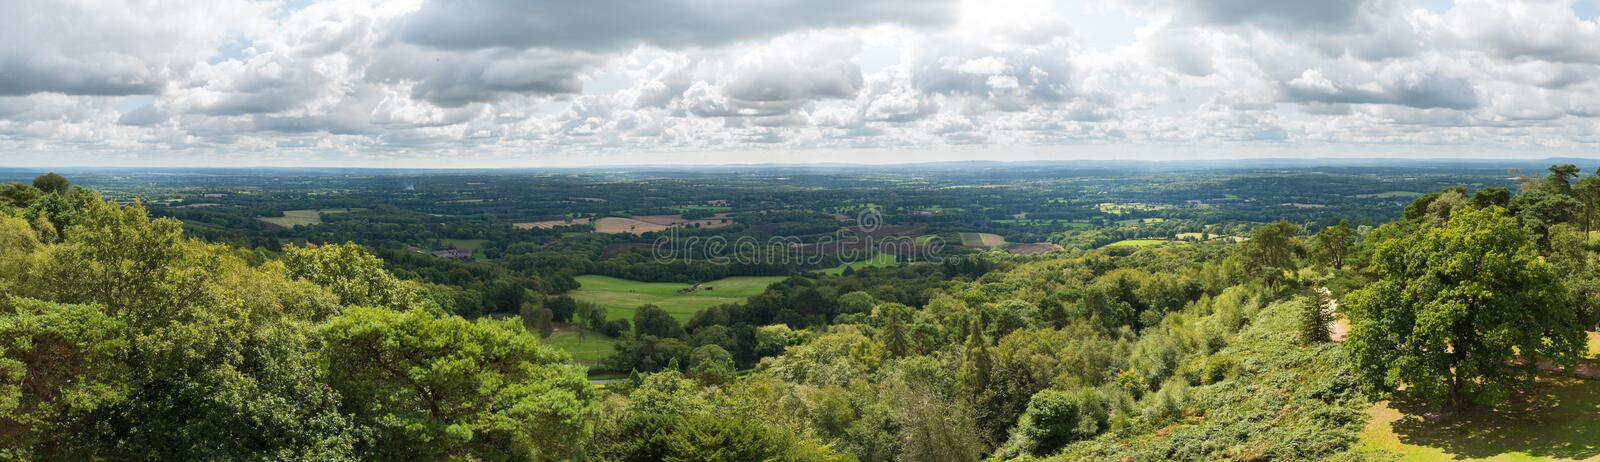 Panoramic view of the Surrey and Sussex countryside from the North Downs to the South Downs in England, UK stock photos